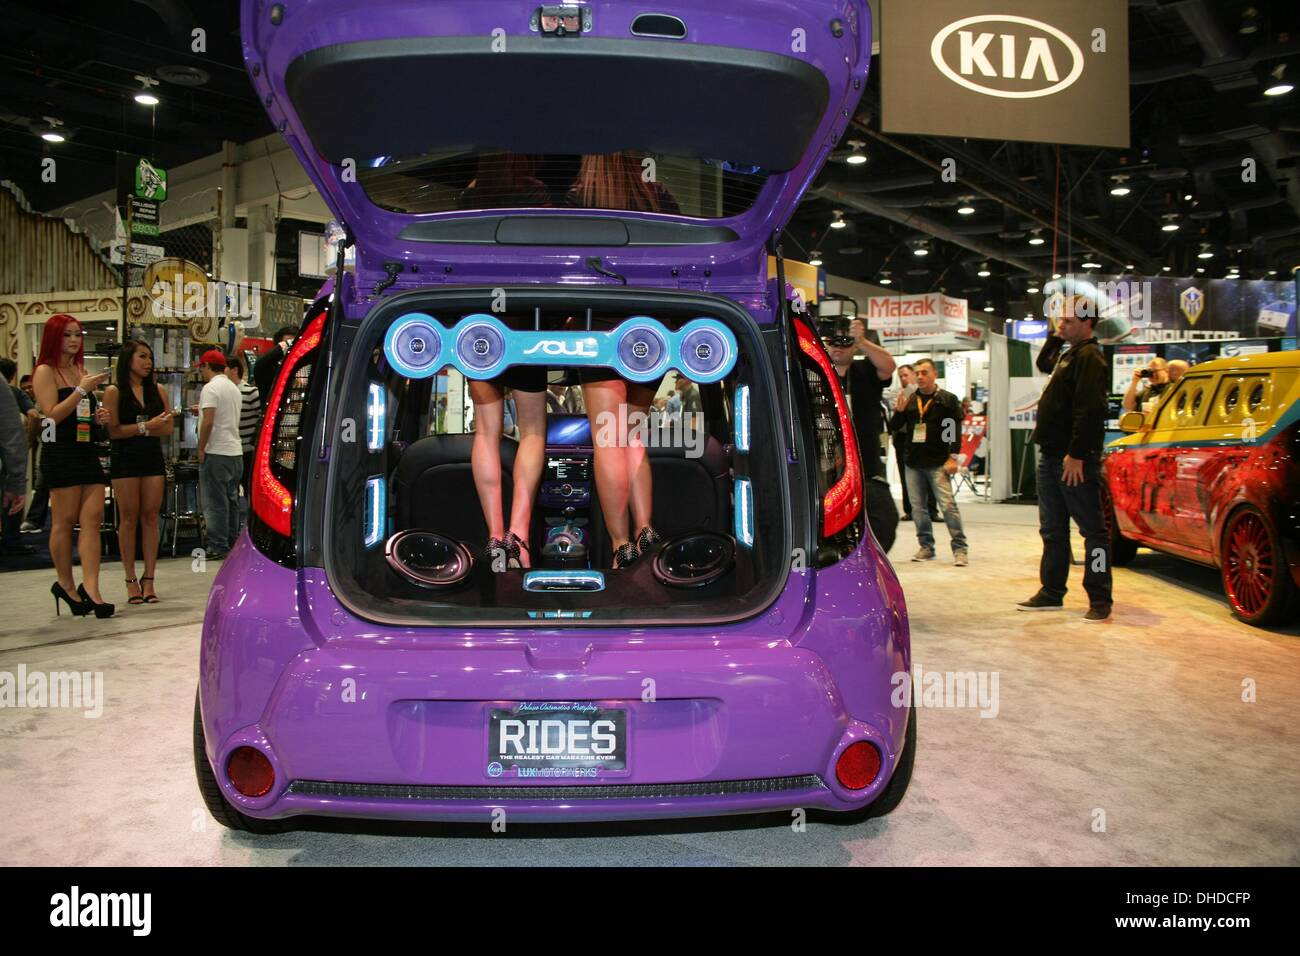 shot las color opens new with at storefront reflections present kia was pm subaru and big graphics screen vegas dealership